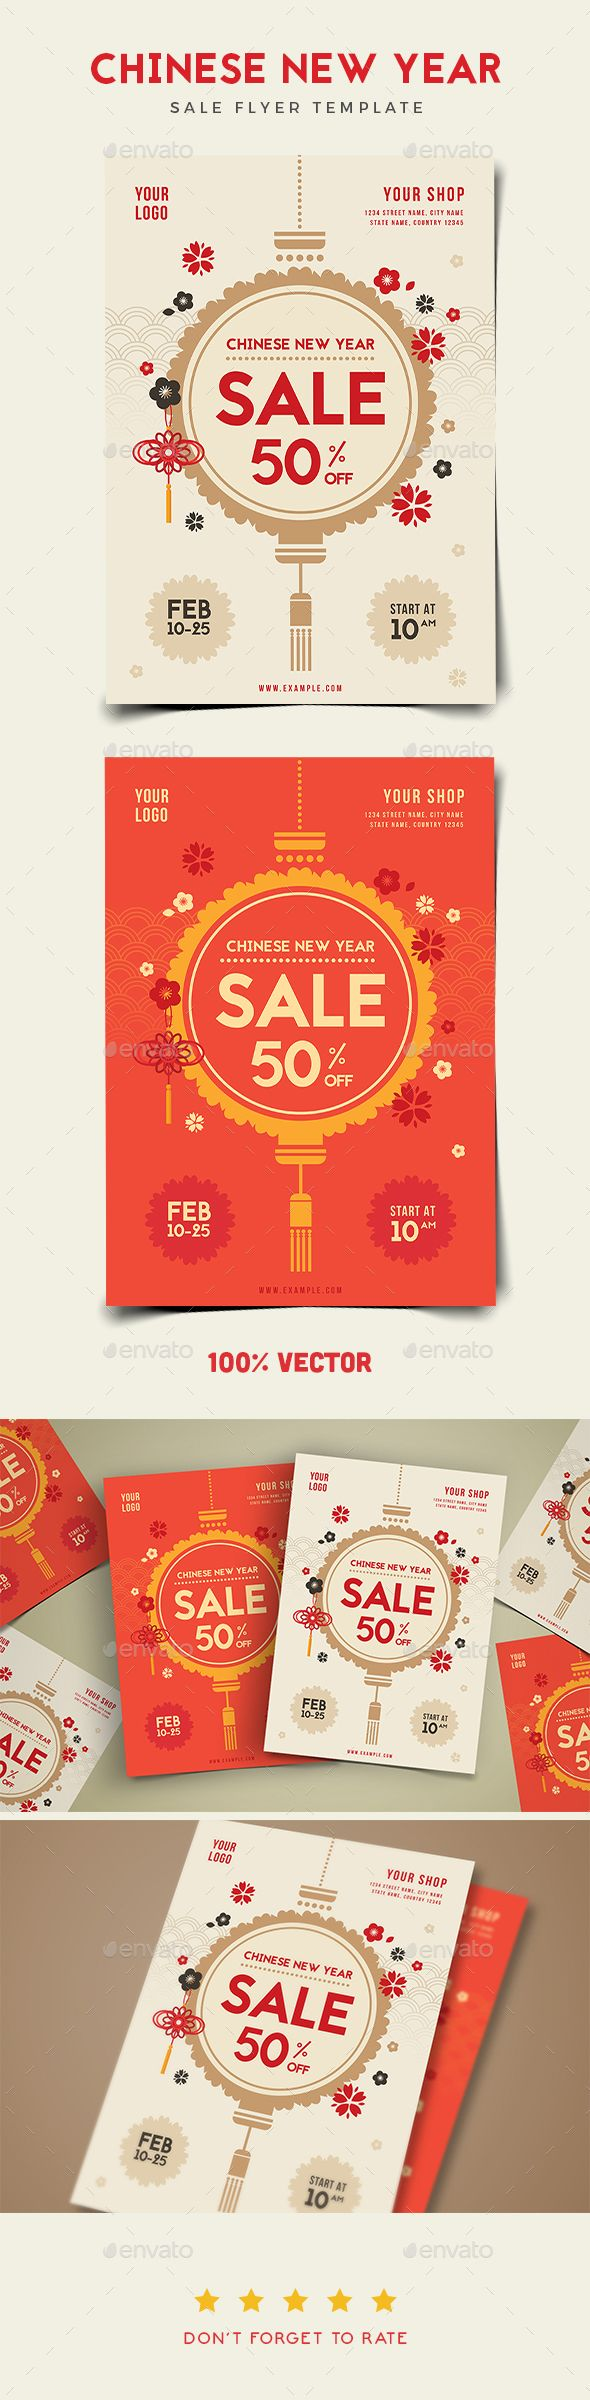 Chinese New Year Sale Flyer Template PSD, AI